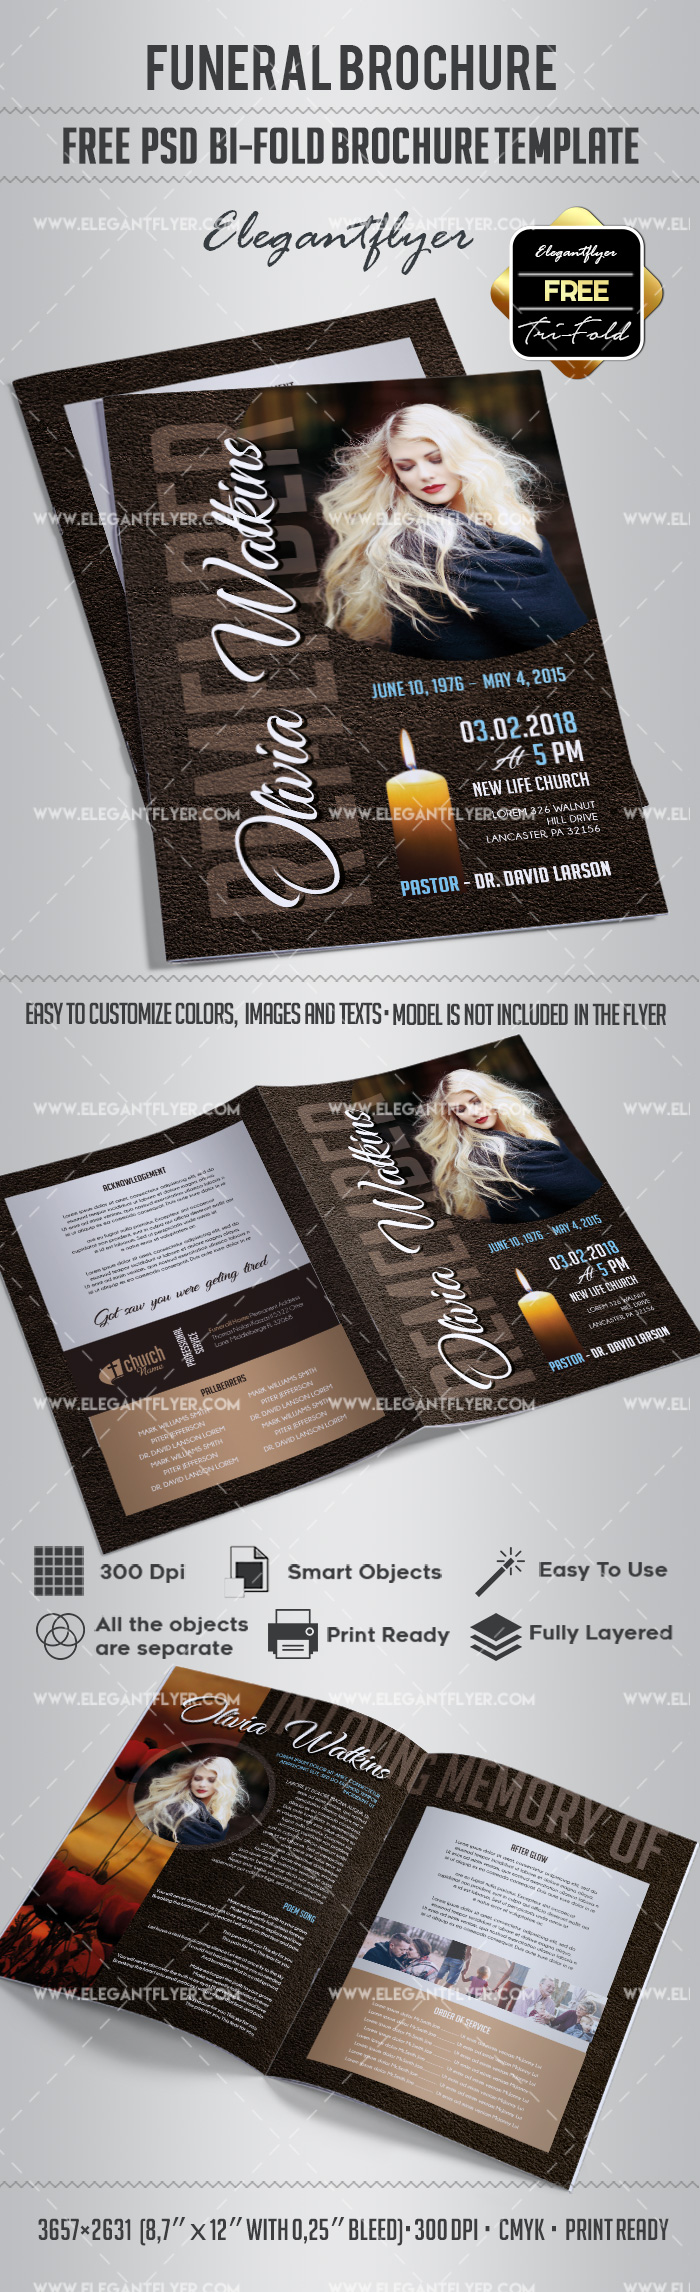 Free bi fold brochure for funeral by elegantflyer for 2 fold brochure template psd